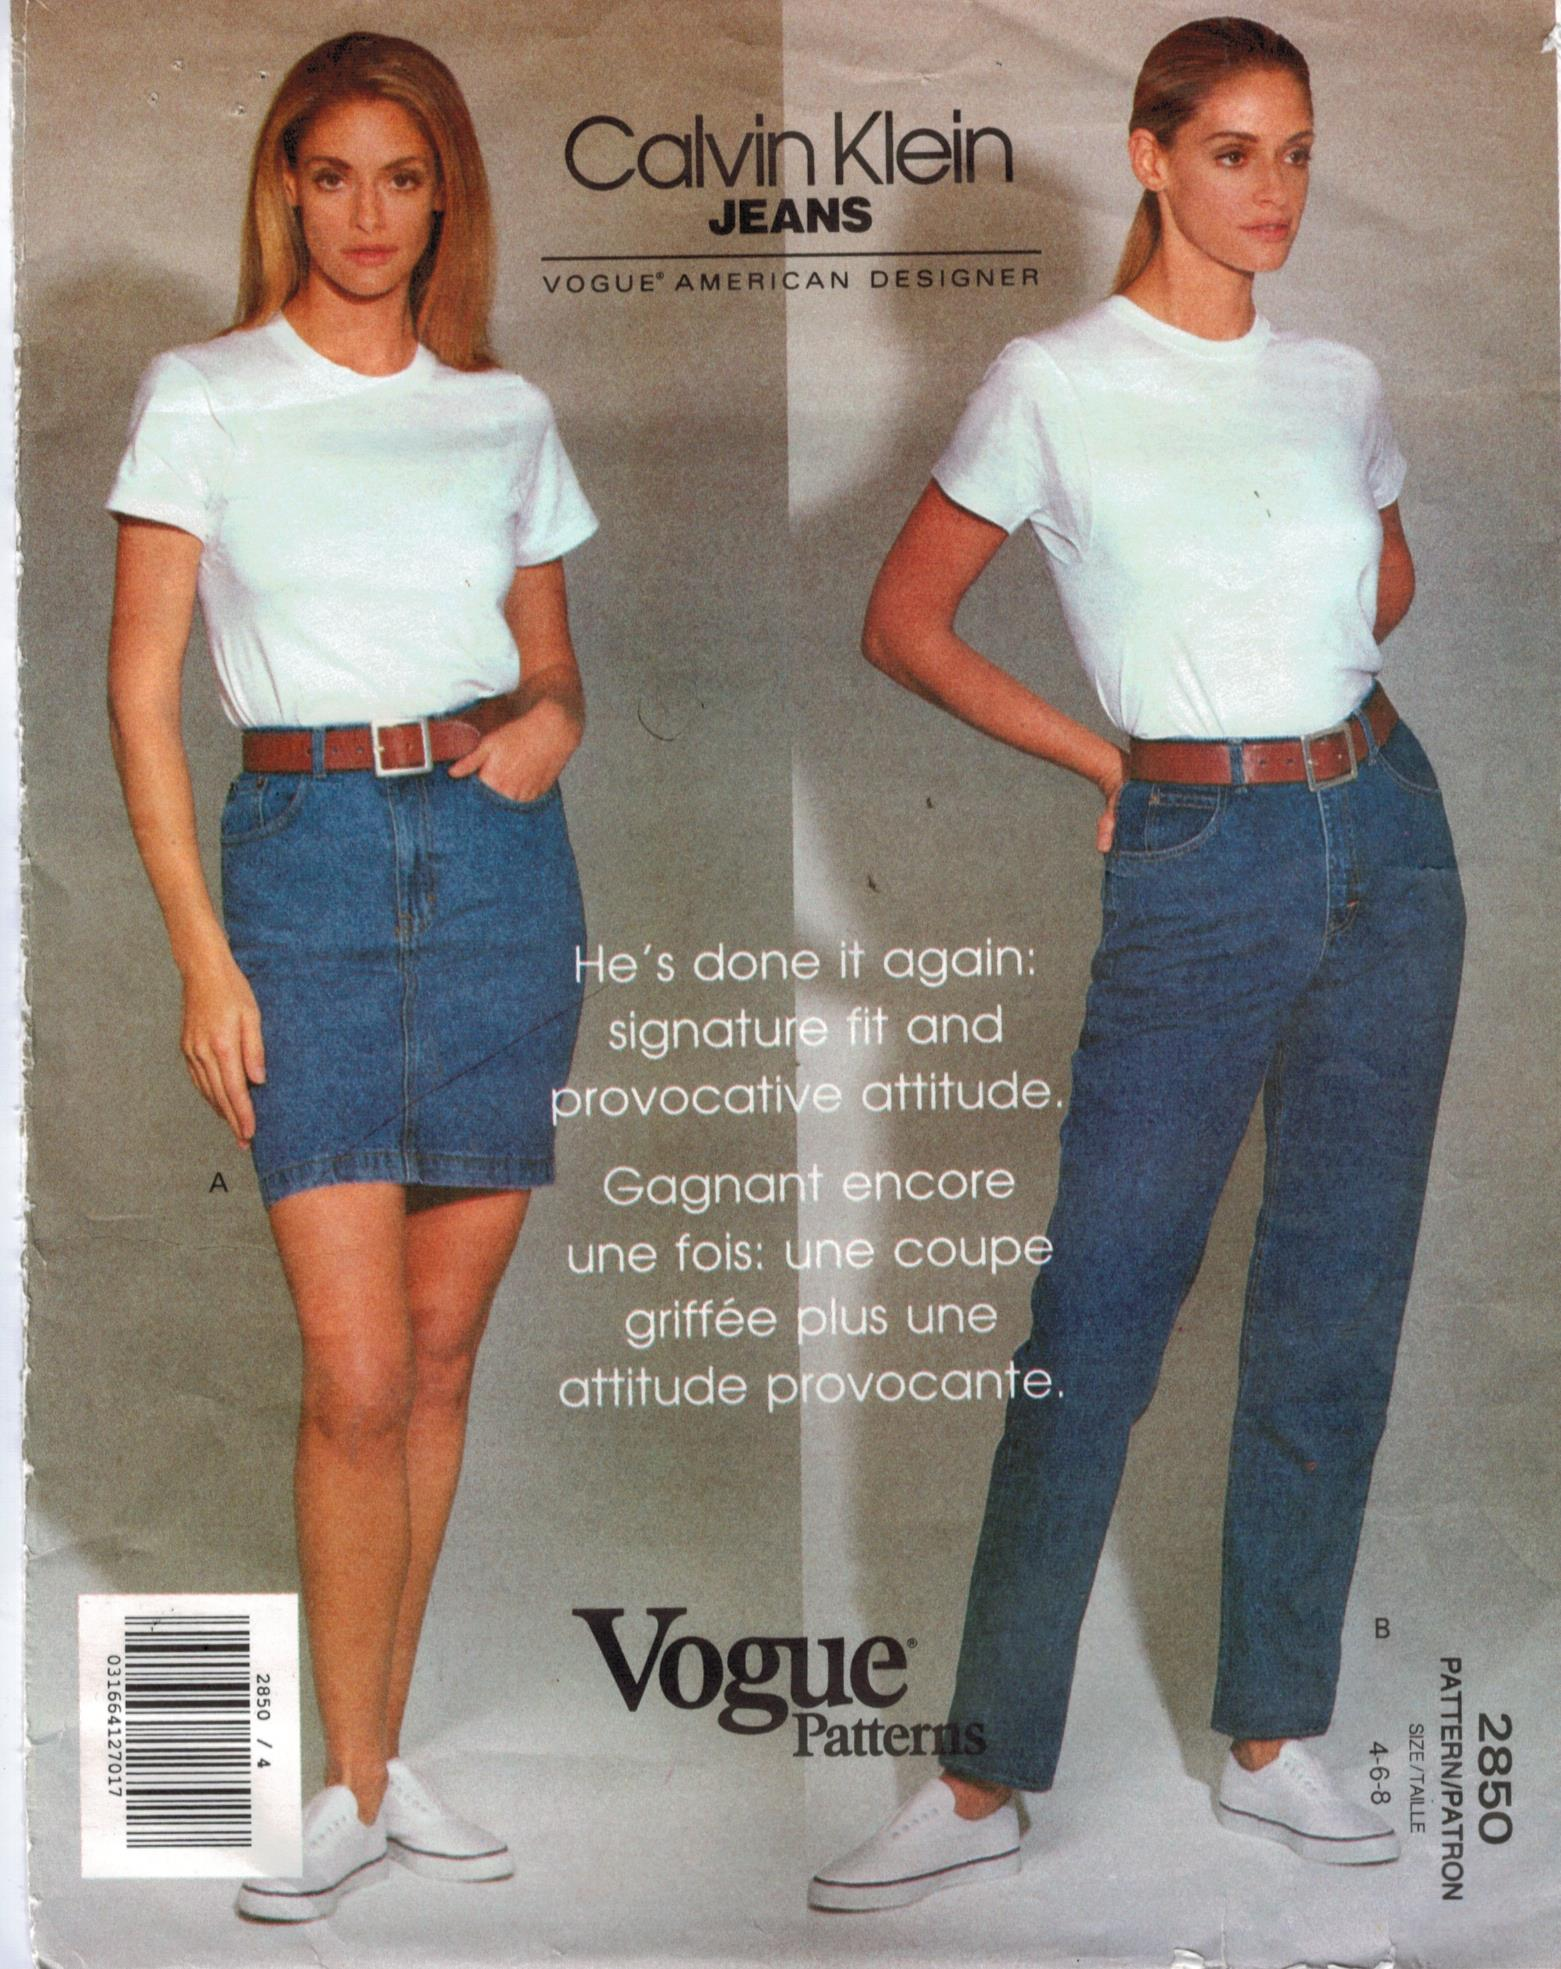 70977a70b77 Vogue Pattern 2850 Calvin Klein Designer Jeans and Skirt sizes 4-6-8 ...